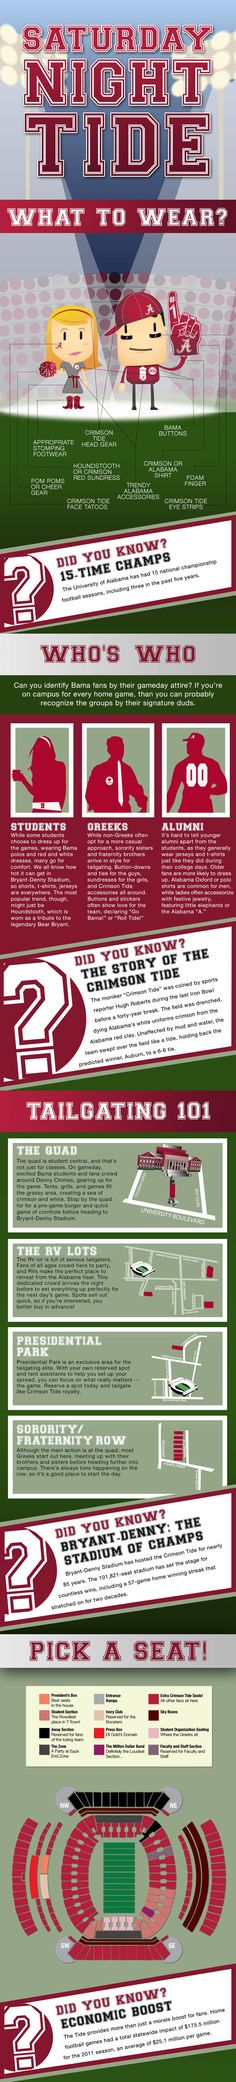 Infographic: Saturday Night Tide: Tailgating with the University of Alabama